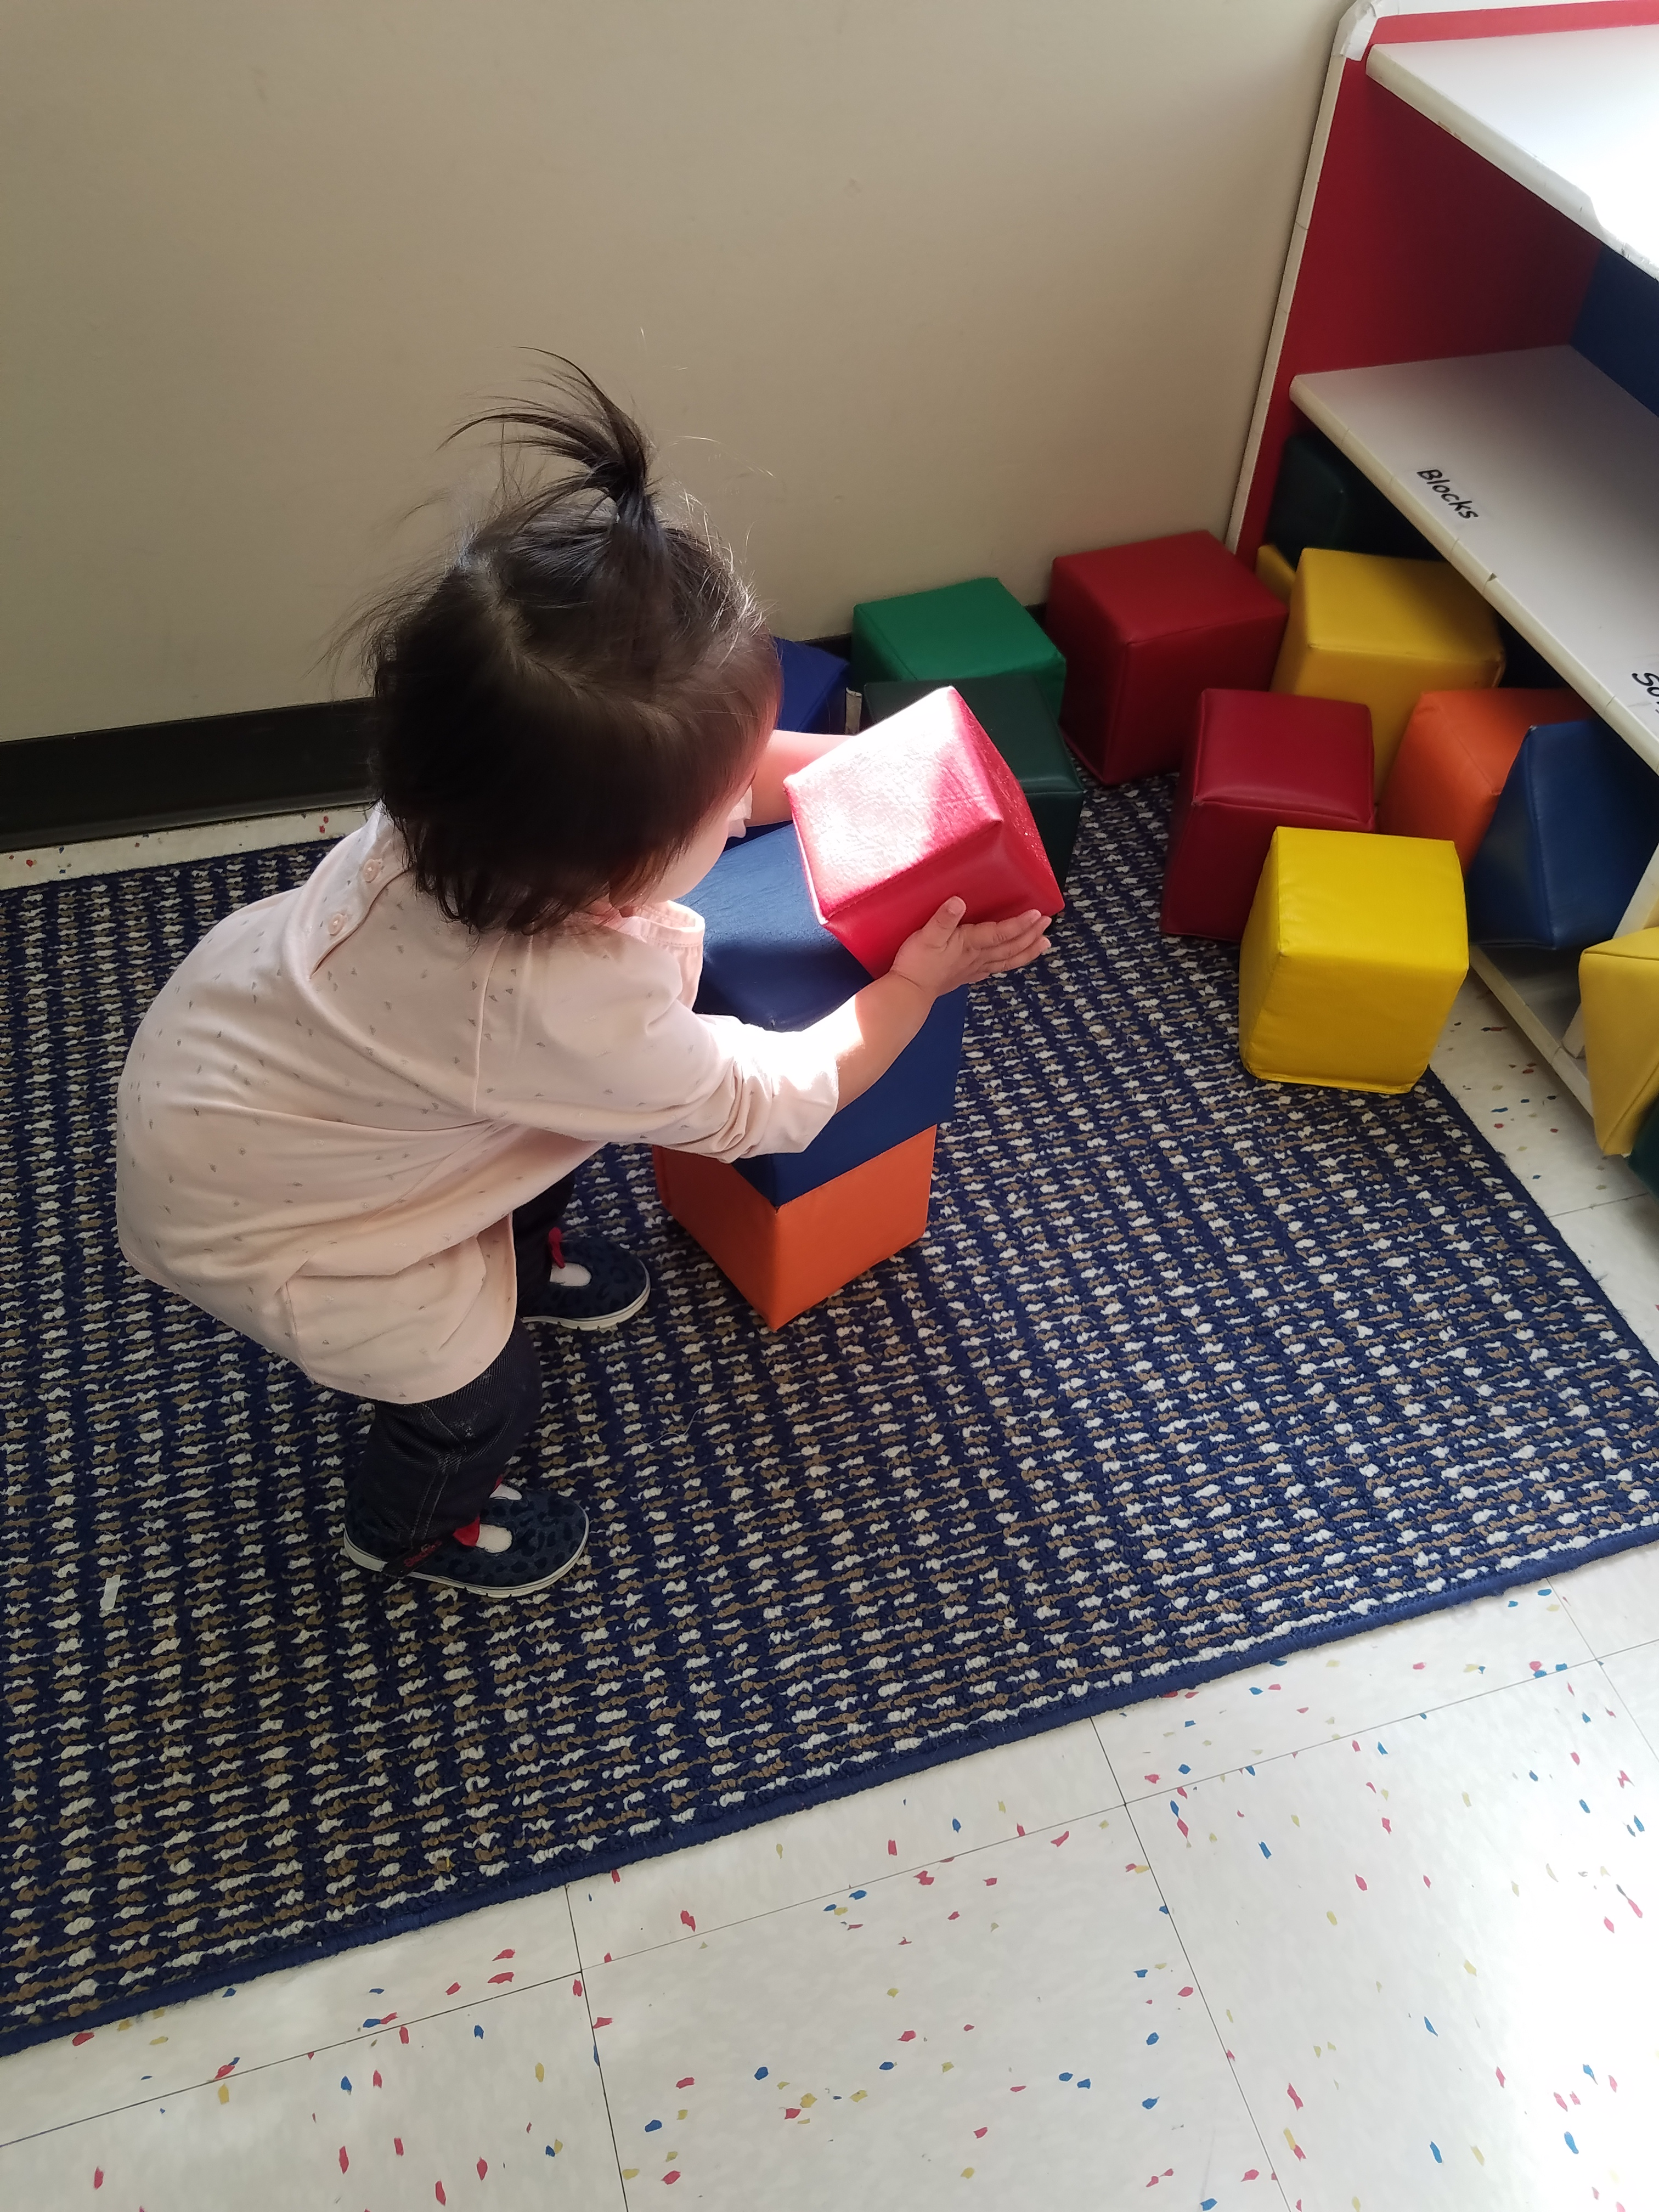 Our Toddler room teaches children ages 15 months to 2 years. Learning centers focus on different skills daily.